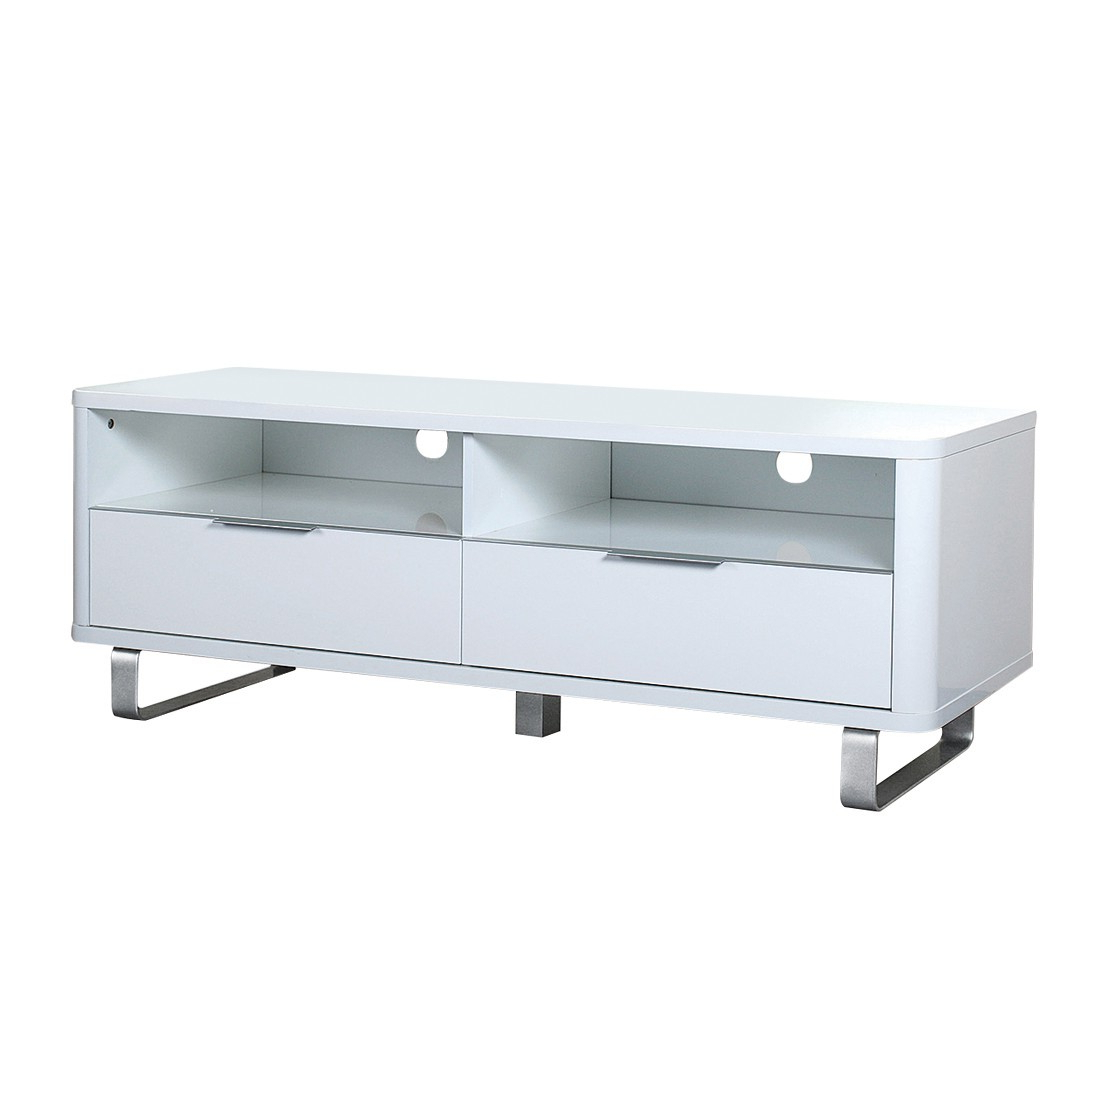 Tiva Ladder Tv Stands Pertaining To Latest Accent Sideboard White – Furnmart® (View 6 of 10)